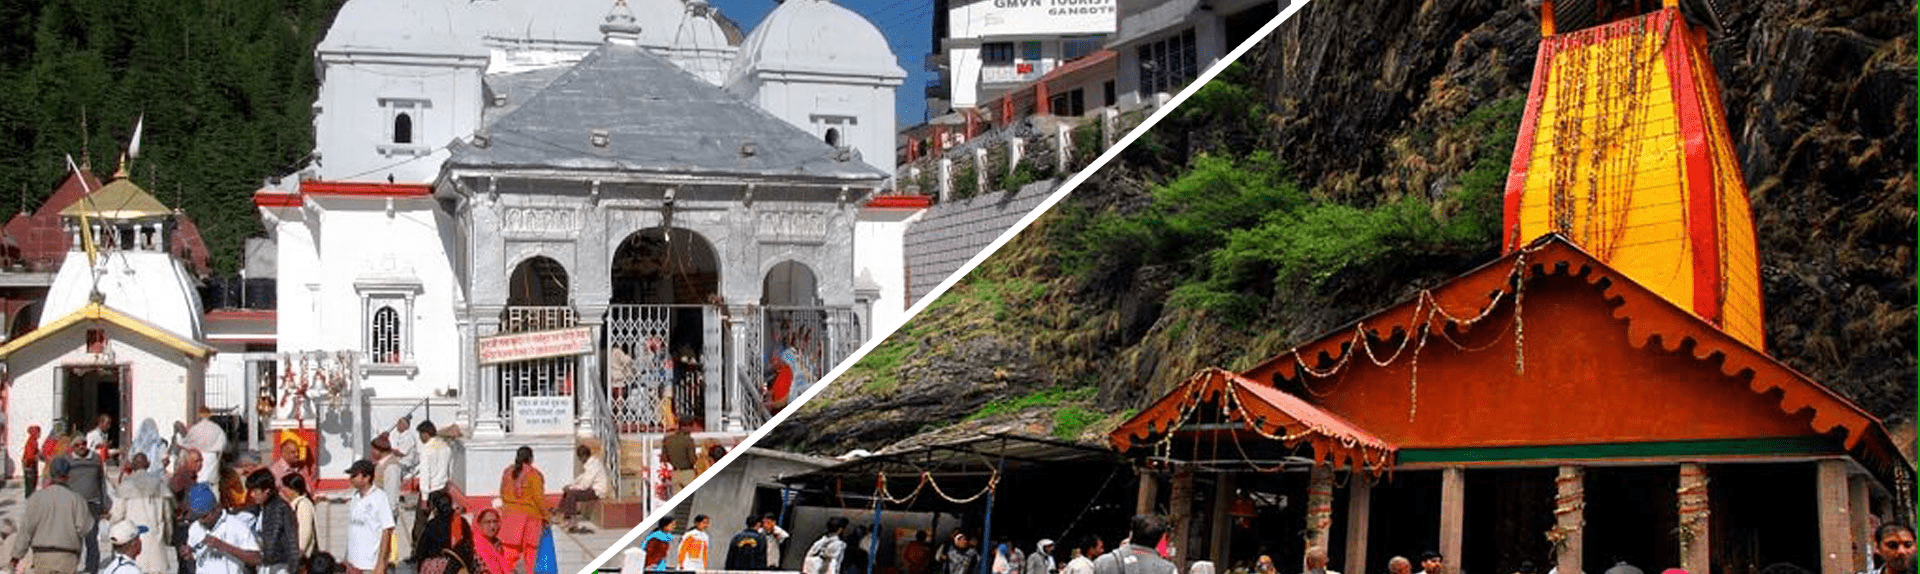 Yamunotri temple and Gangotri temple visited by devotees on Do Dham Yatra in Uttarakhand